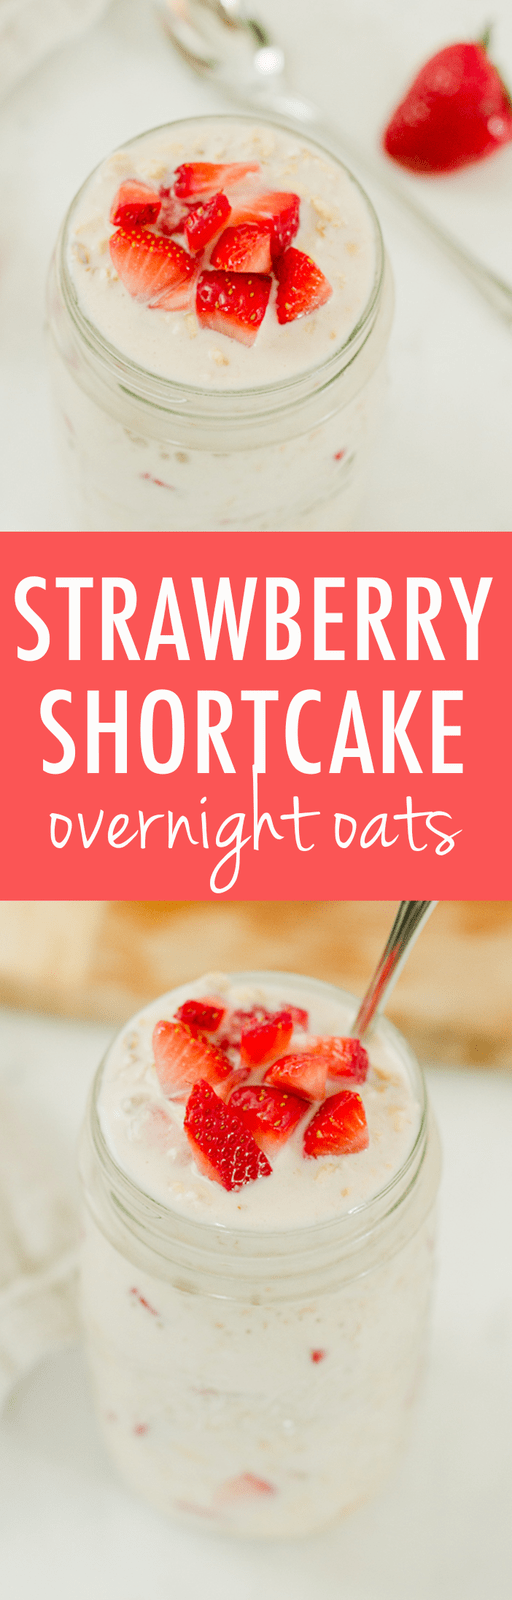 Oatmeal with no cooking necessary, these Strawberry Shortcake Overnight Oats are loaded with fresh strawberries and make you feel like you're having dessert for breakfast.